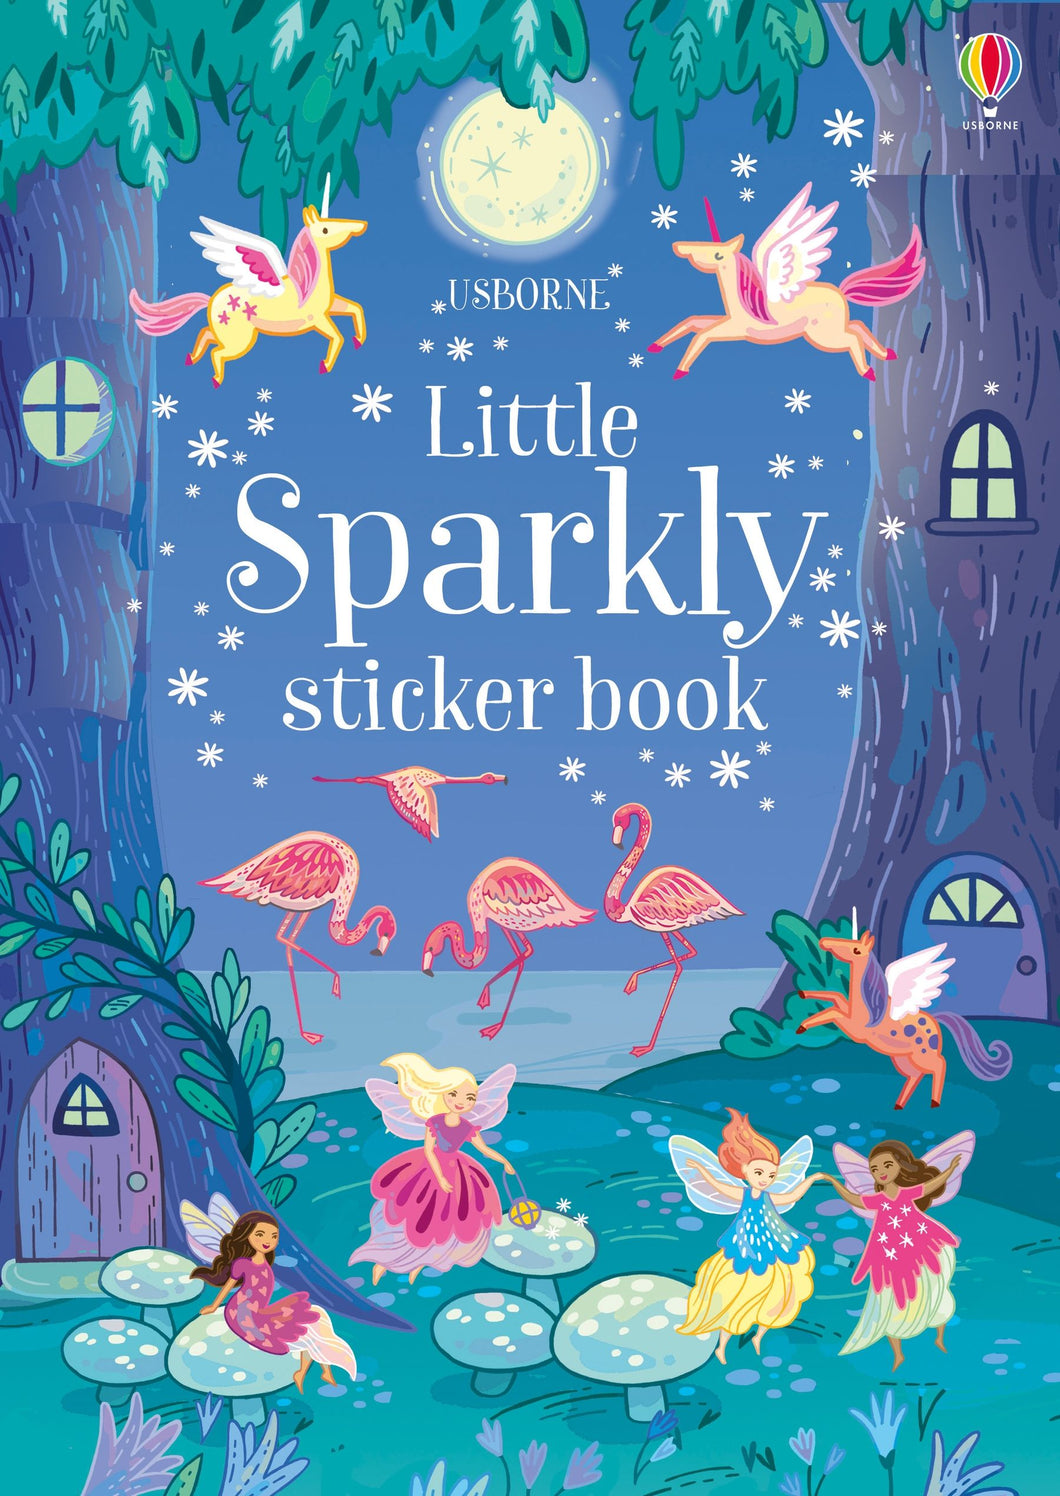 Little Sparkly Unicorn Sticker Book